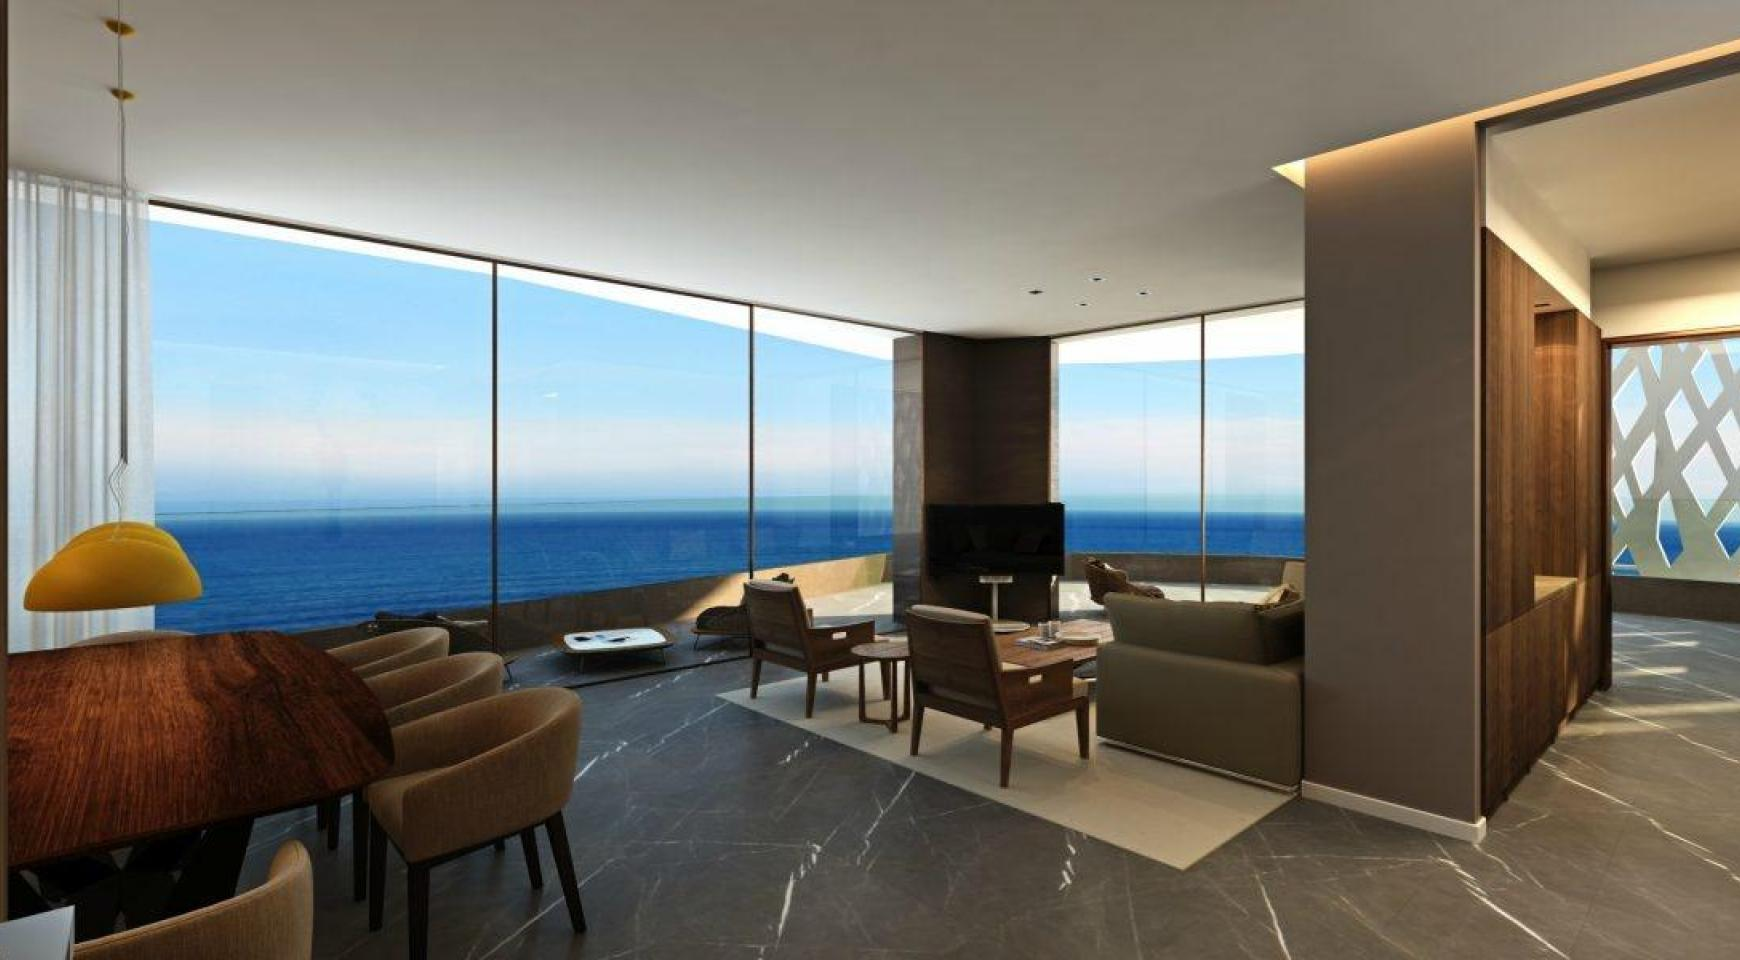 3 Bedroom Apartment in a New Unique Project by the Sea - 17